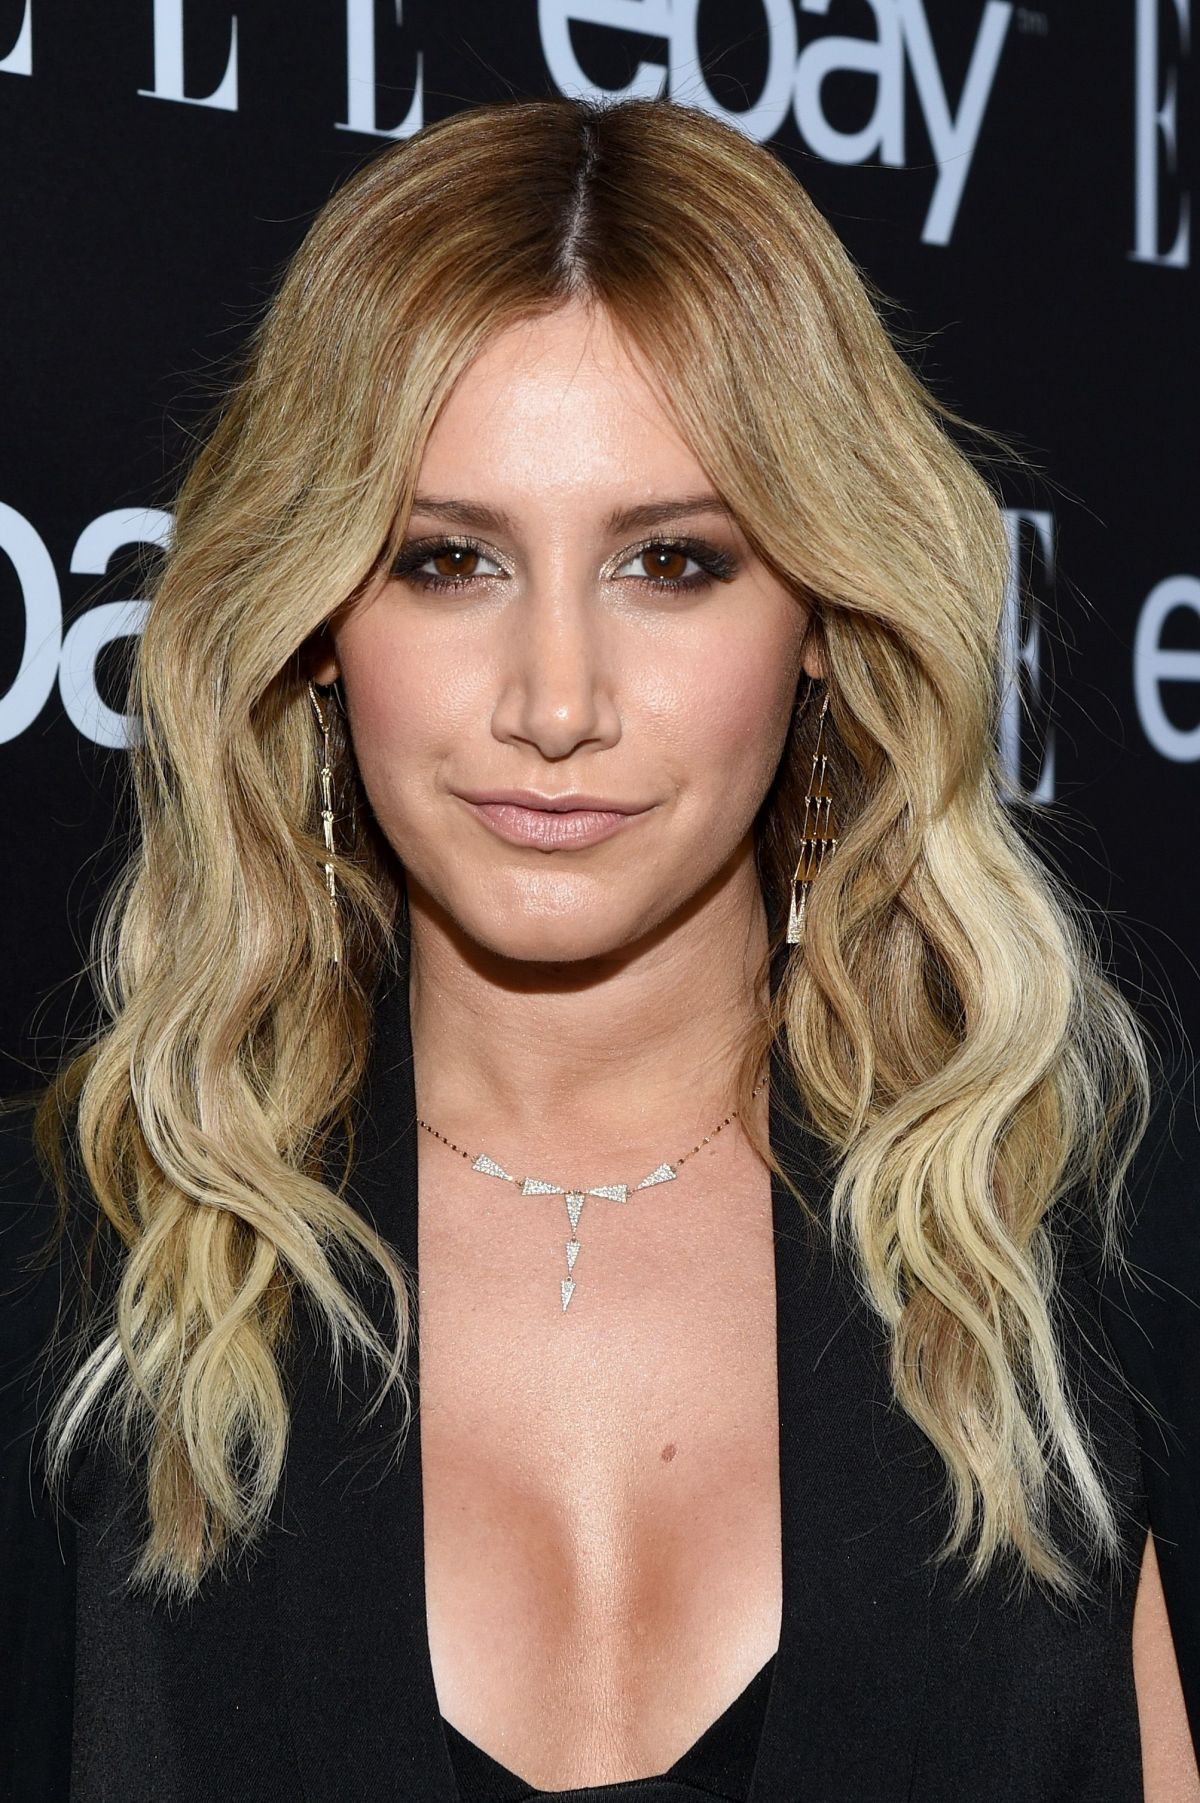 ashley tisdale husbandashley tisdale 2016, ashley tisdale vk, ashley tisdale gallery, ashley tisdale be good to me, ashley tisdale 2017, ashley tisdale not like that, ashley tisdale crank it up, ashley tisdale кинопоиск, ashley tisdale husband, ashley tisdale official website, ashley tisdale tumblr, ashley tisdale песни, ashley tisdale net worth, ashley tisdale movies, ashley tisdale no princess, ashley tisdale how do you love someone lyrics, ashley tisdale interview, ashley tisdale ex's & oh's скачать, ashley tisdale so much for you, ashley tisdale sprouse twins